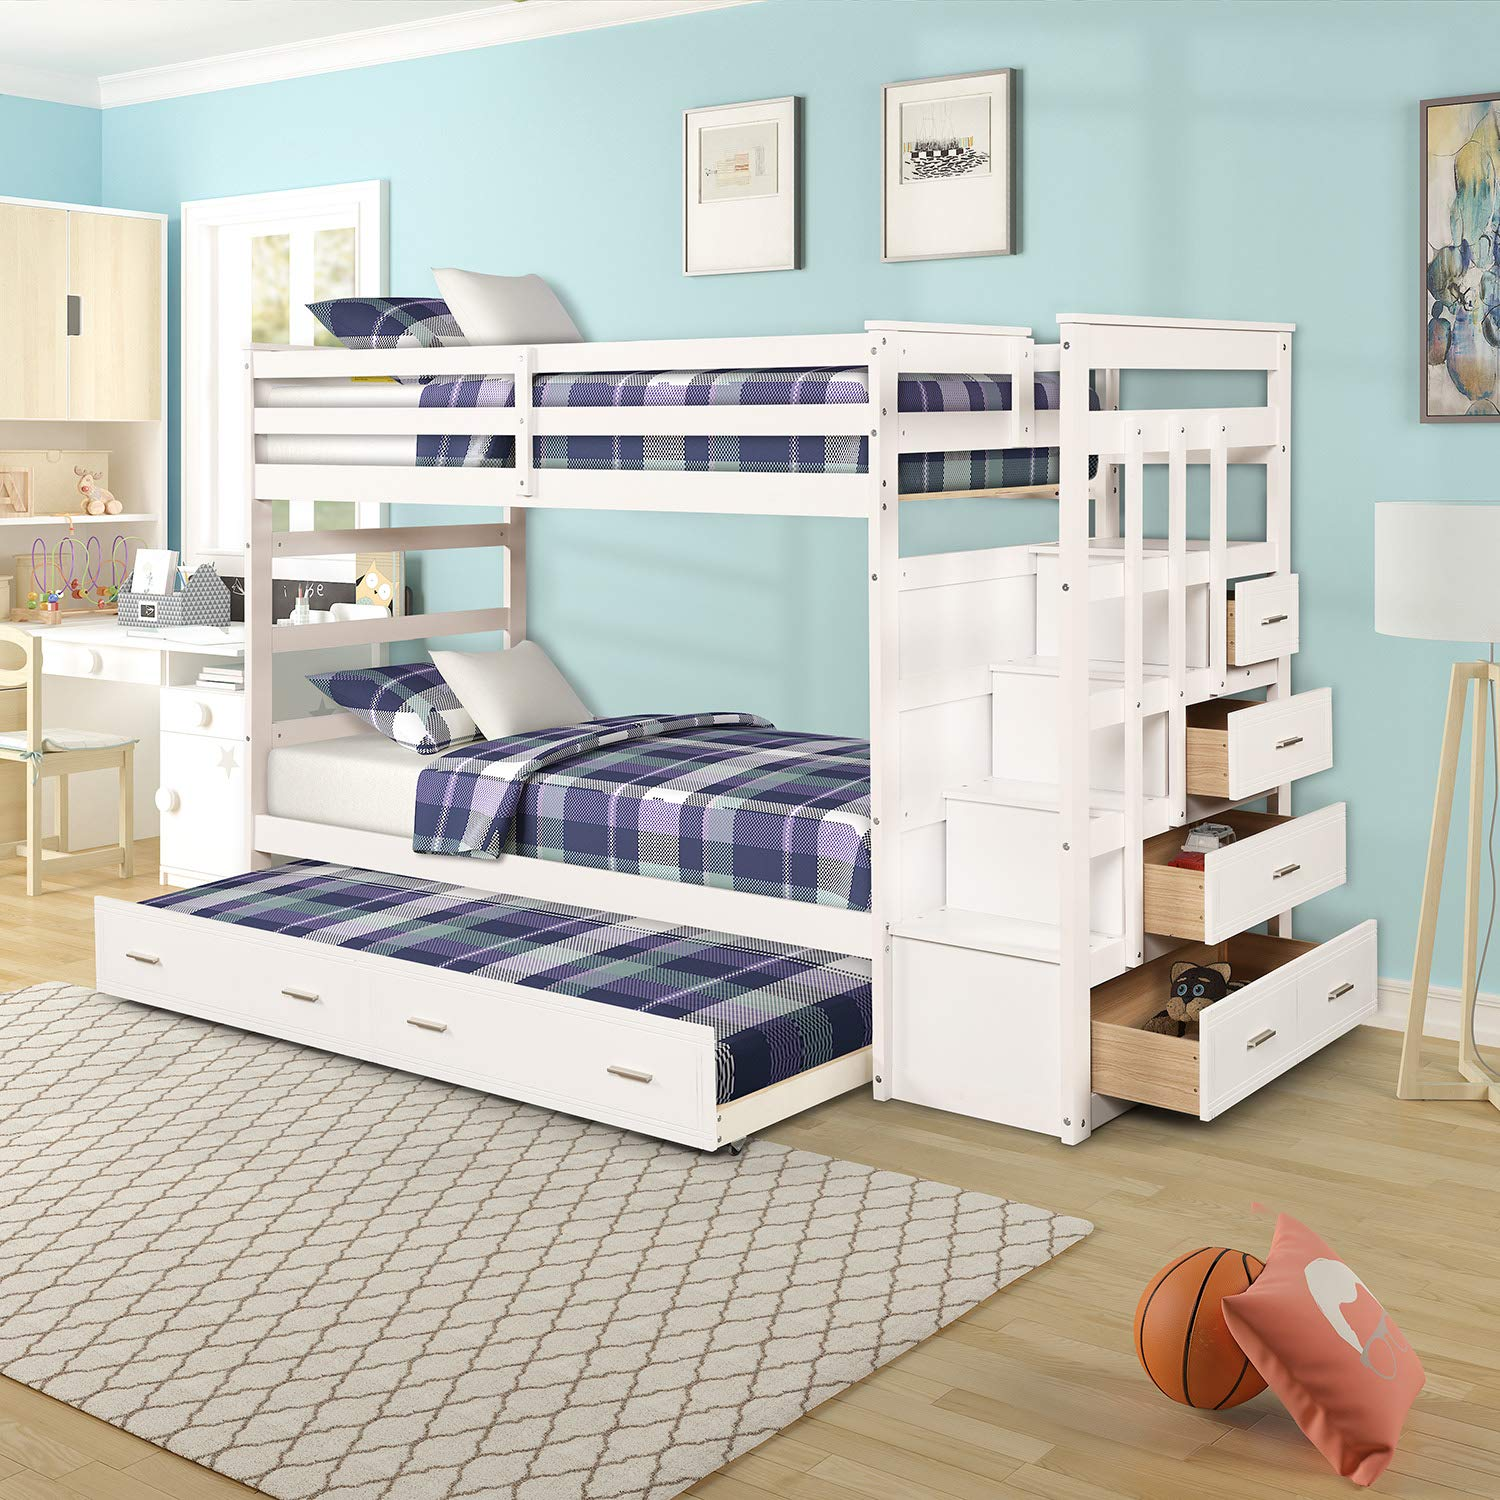 Bunk Bed For Kids Twin Over Twin Bunk Bed With Trundle And Staircase Trundle Bed With Rails White Buy Online In Aruba At Aruba Desertcart Com Productid 177905008